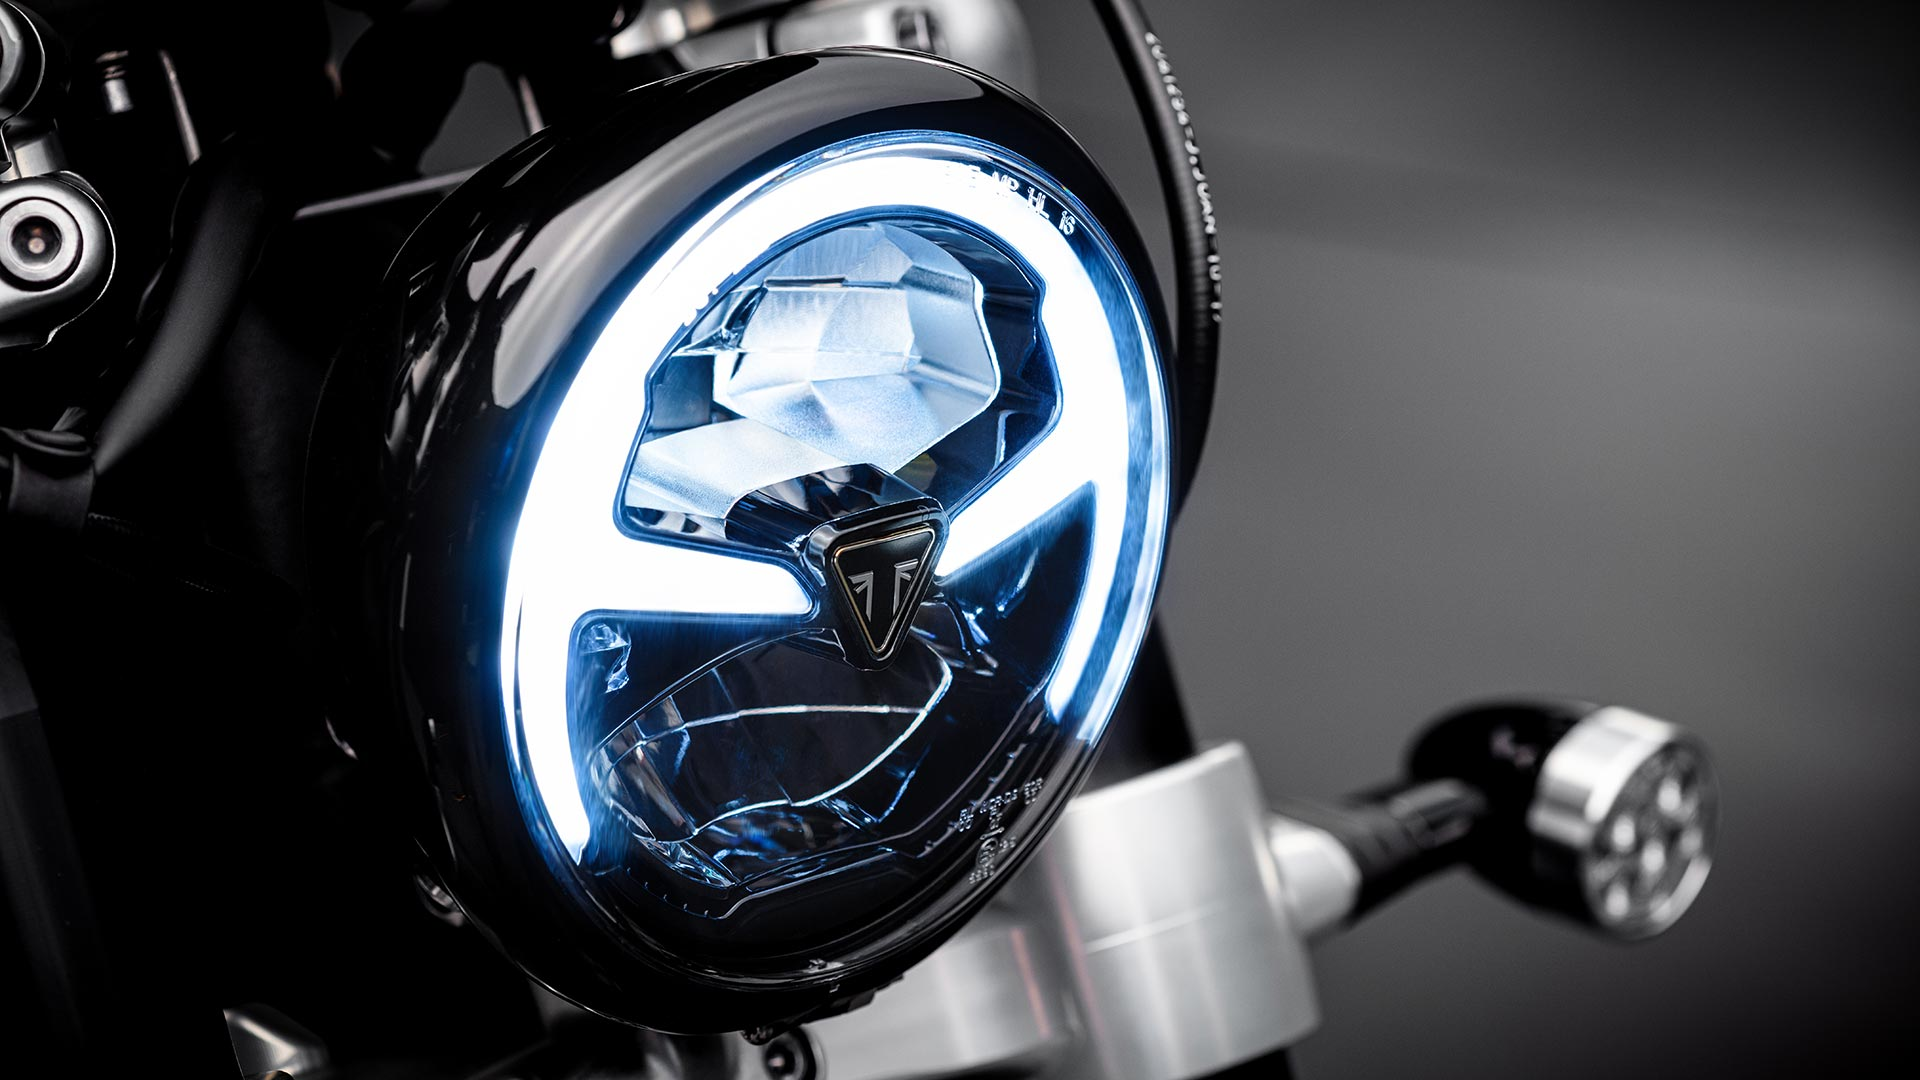 Close-up shot of the Triumph Bobber TFC's LED headlight